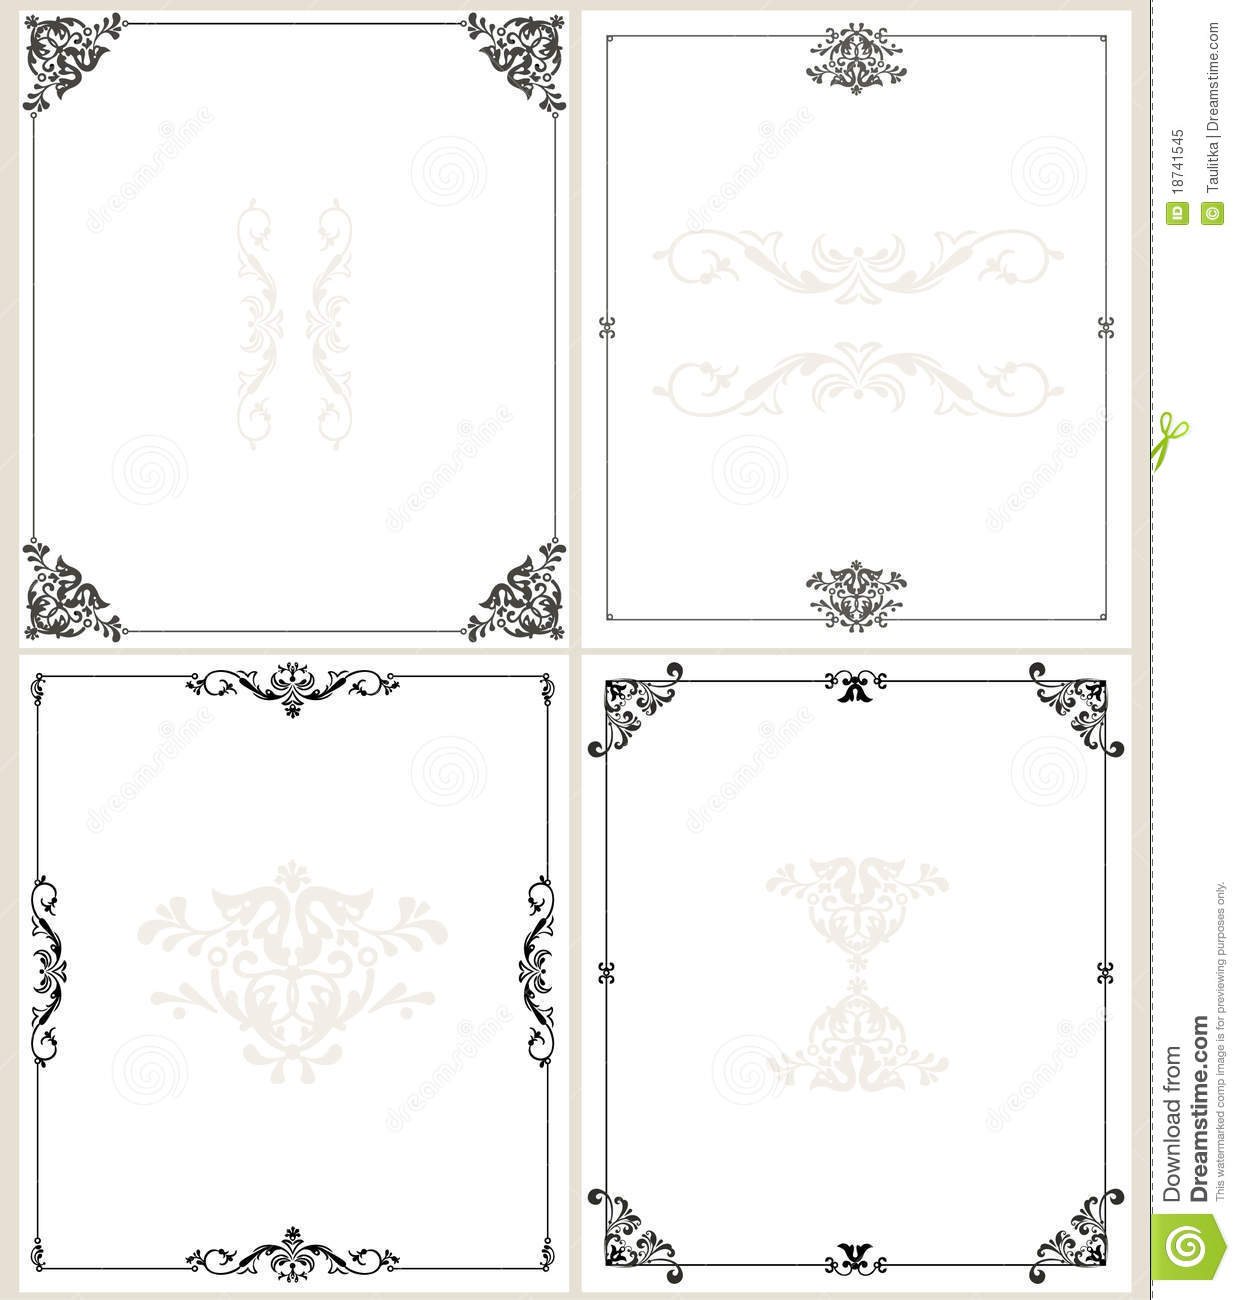 Classic Border Frames Royalty Free Stock Photo - Image: 18741545 Vintage Border Vector